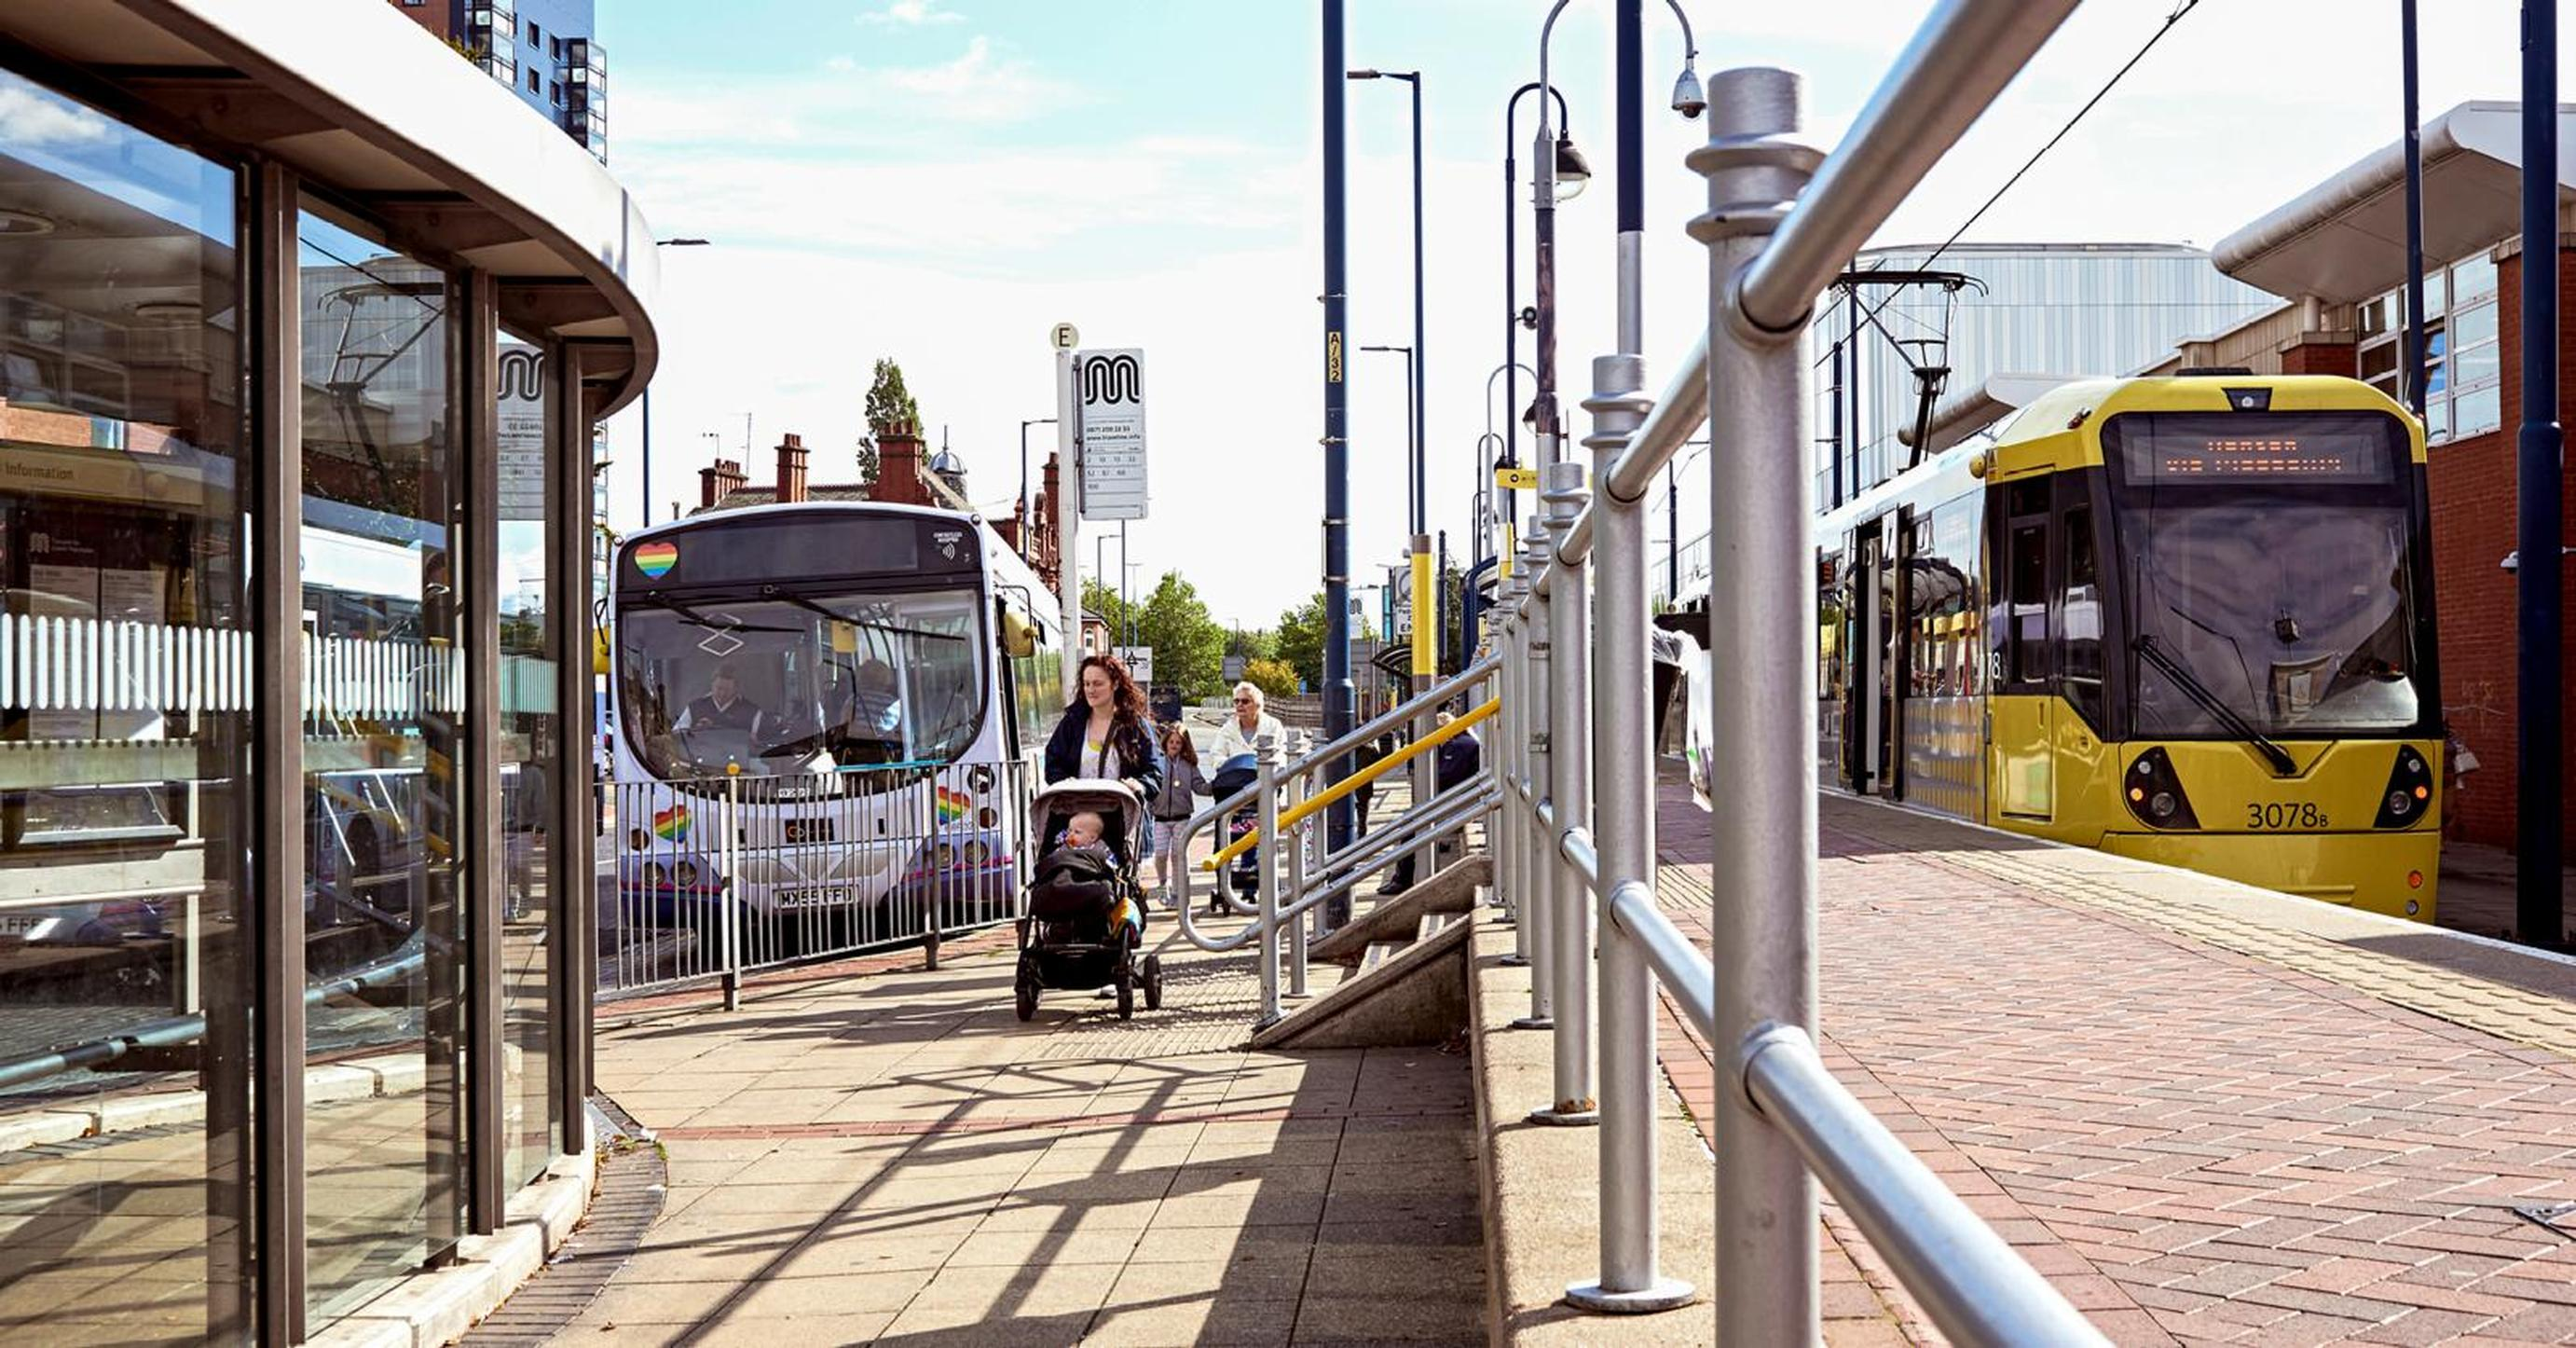 GMCA franchising will enable joined-up planning between bus and tram journeys so passengers will be able to quickly and easily change between them